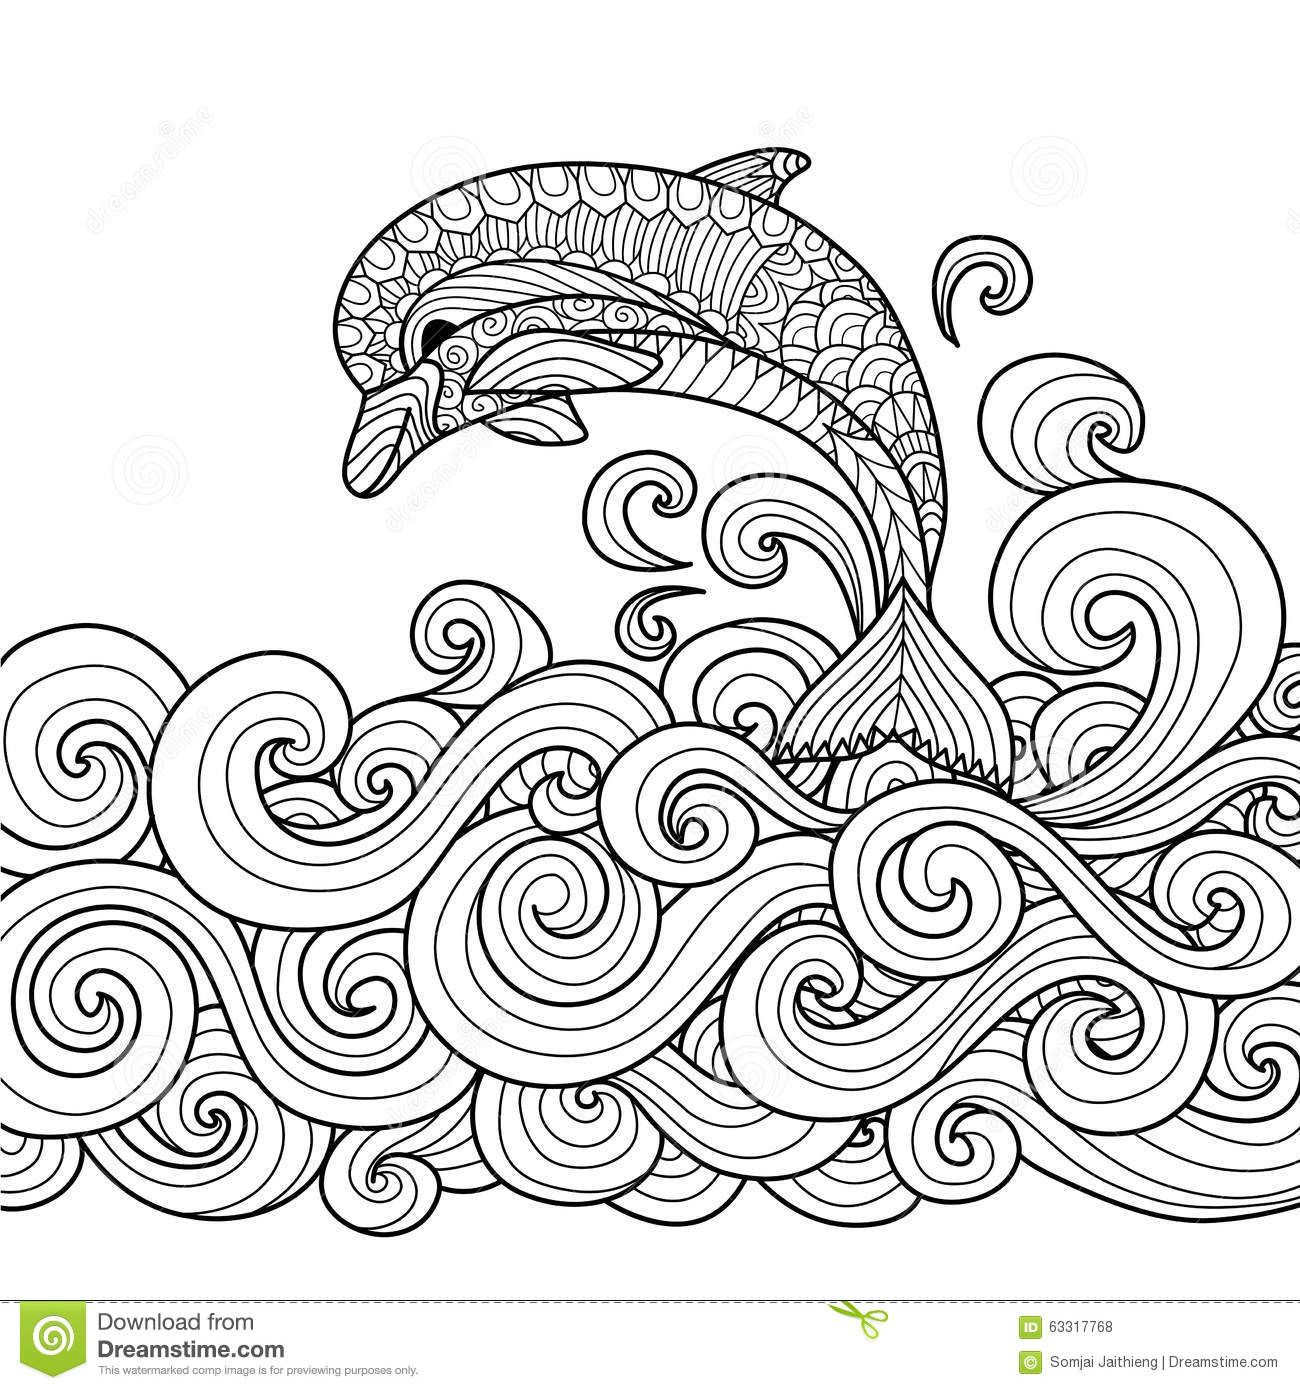 Dolphin Zentangle Hand Drawn Scrolling Sea Wave Coloring Book